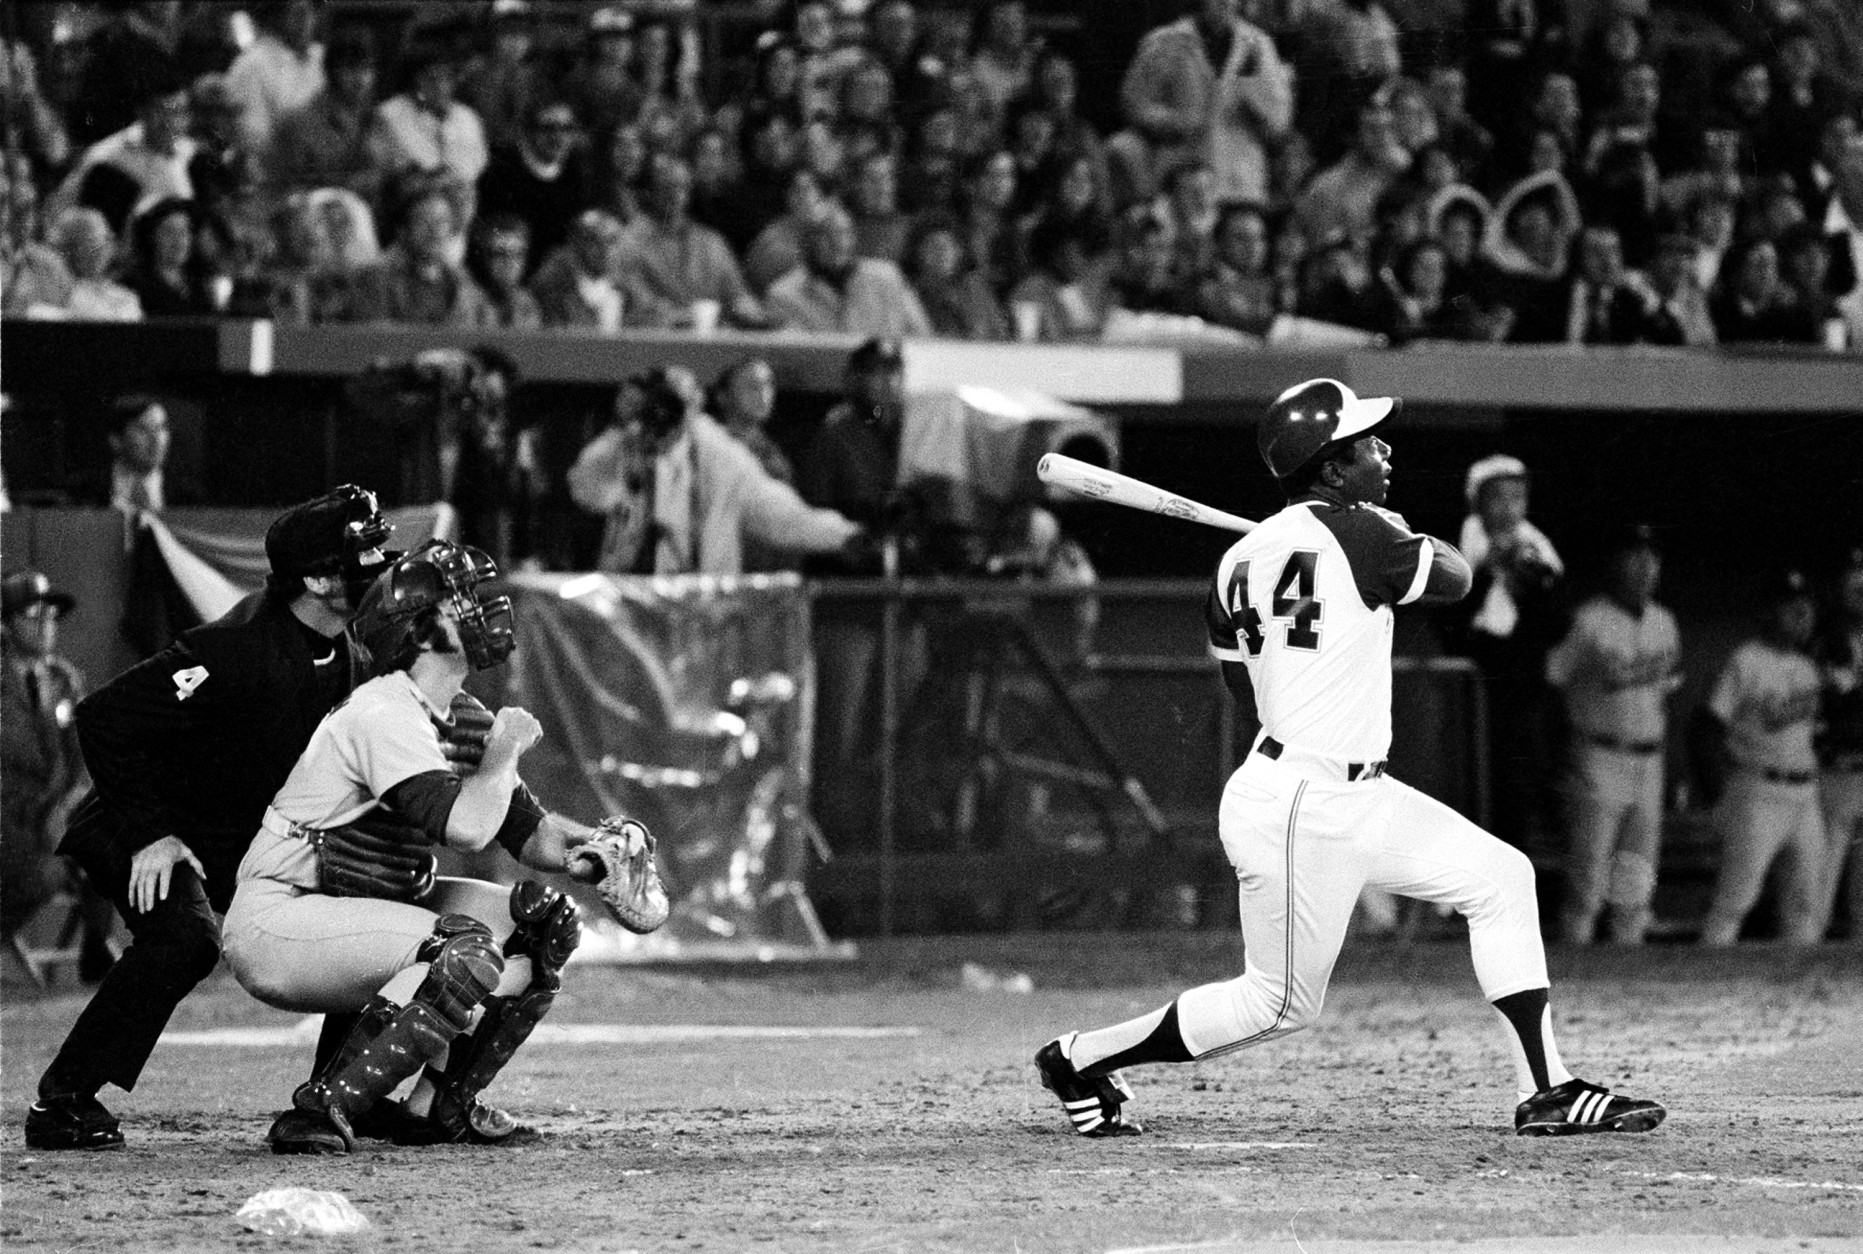 Atlanta Braves' Hank Aaron (44) breaks Babe Ruth's record for career home runs as he hits his 715th off Los Angeles Dodgers pitcher Al Downing in the fourth inning of the game opener at Atlanta-Fulton County Stadium, Ga., Monday night, April 8, 1974.  (AP Photo)